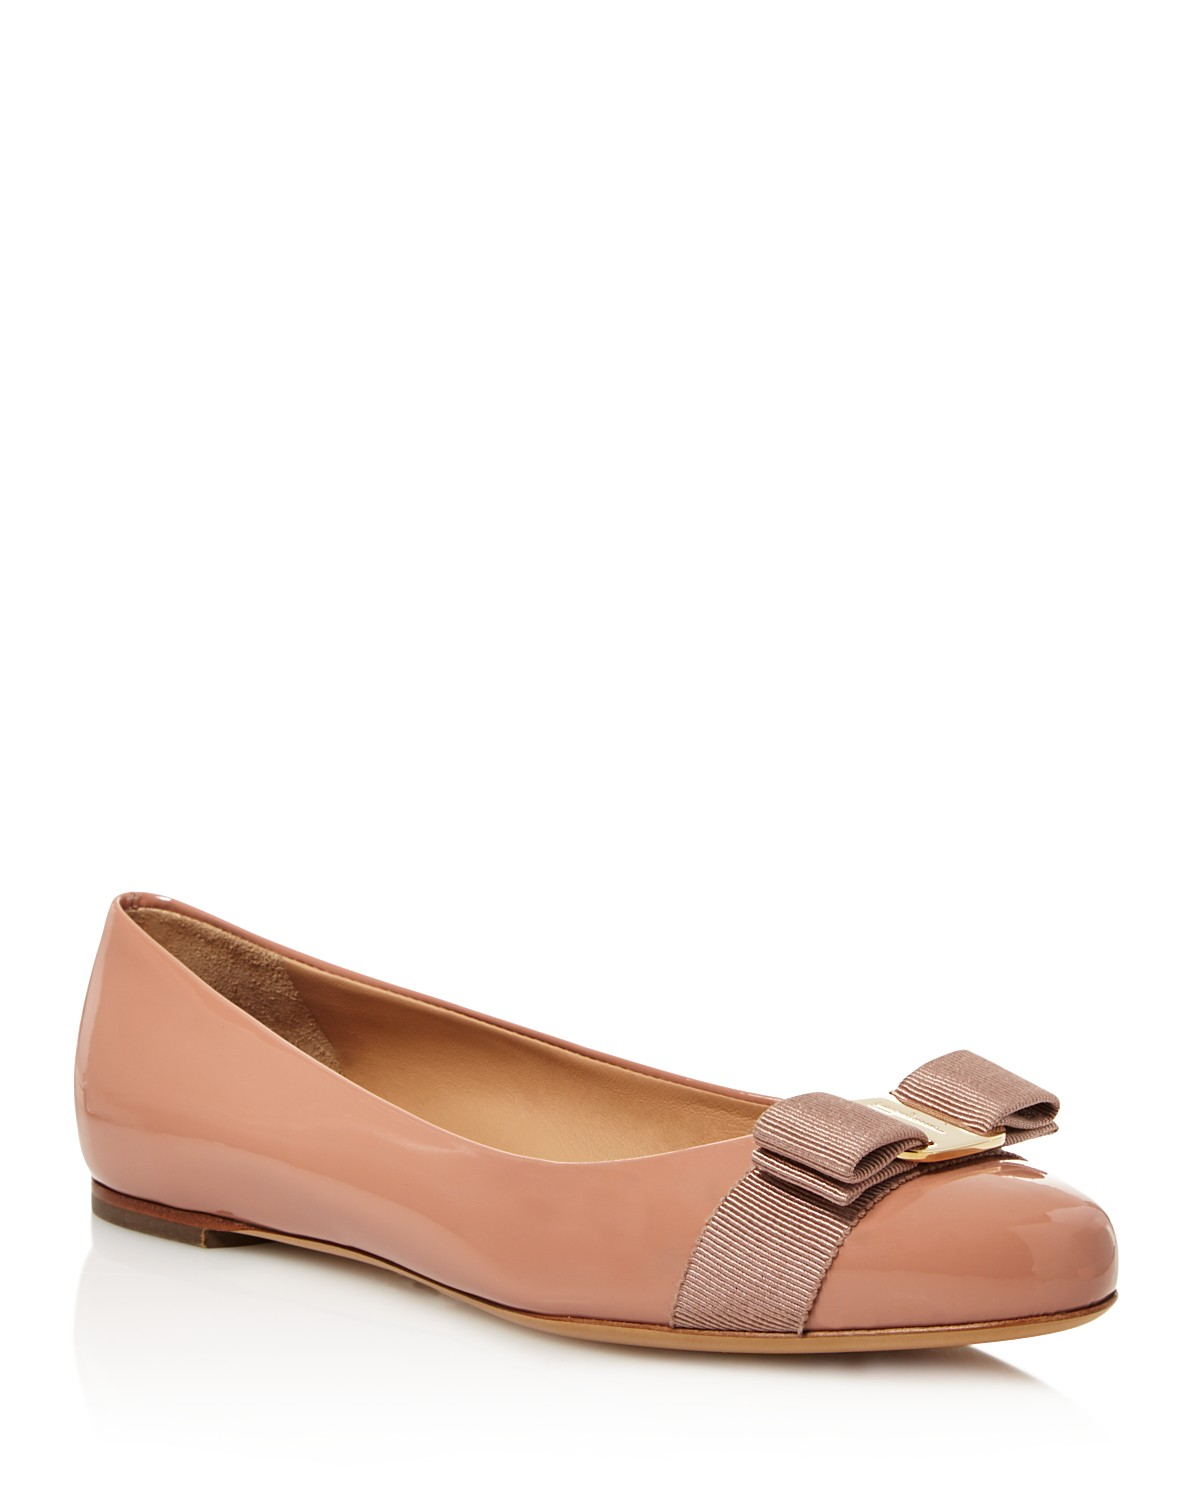 comfortable comforter pin specially and designed to comfort pretty conceal your flats ballet bunions